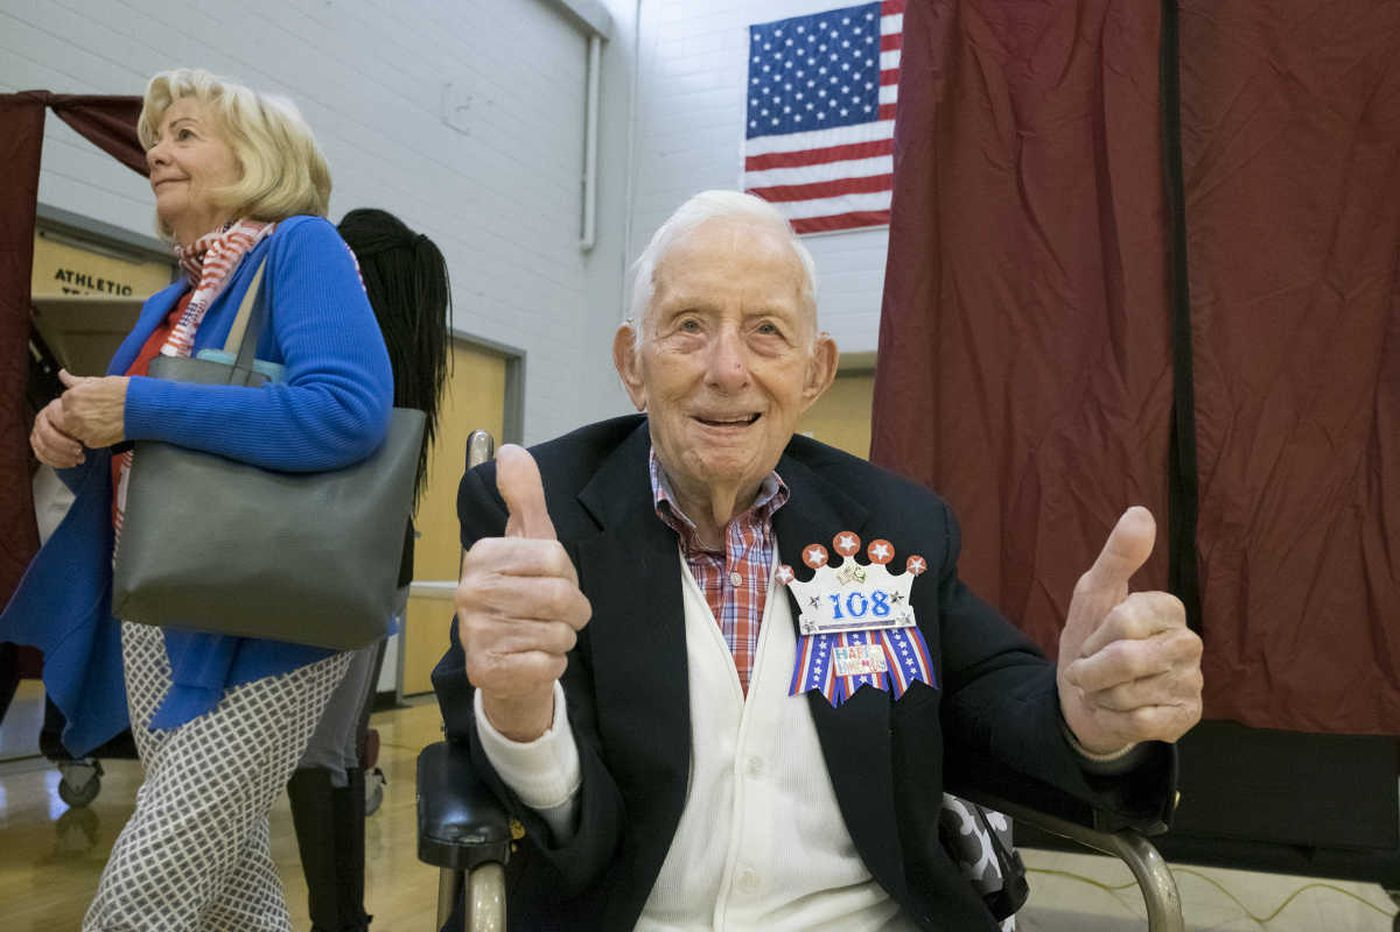 From Hatboro to the White House, a 108-year-old soldier's whirlwind week